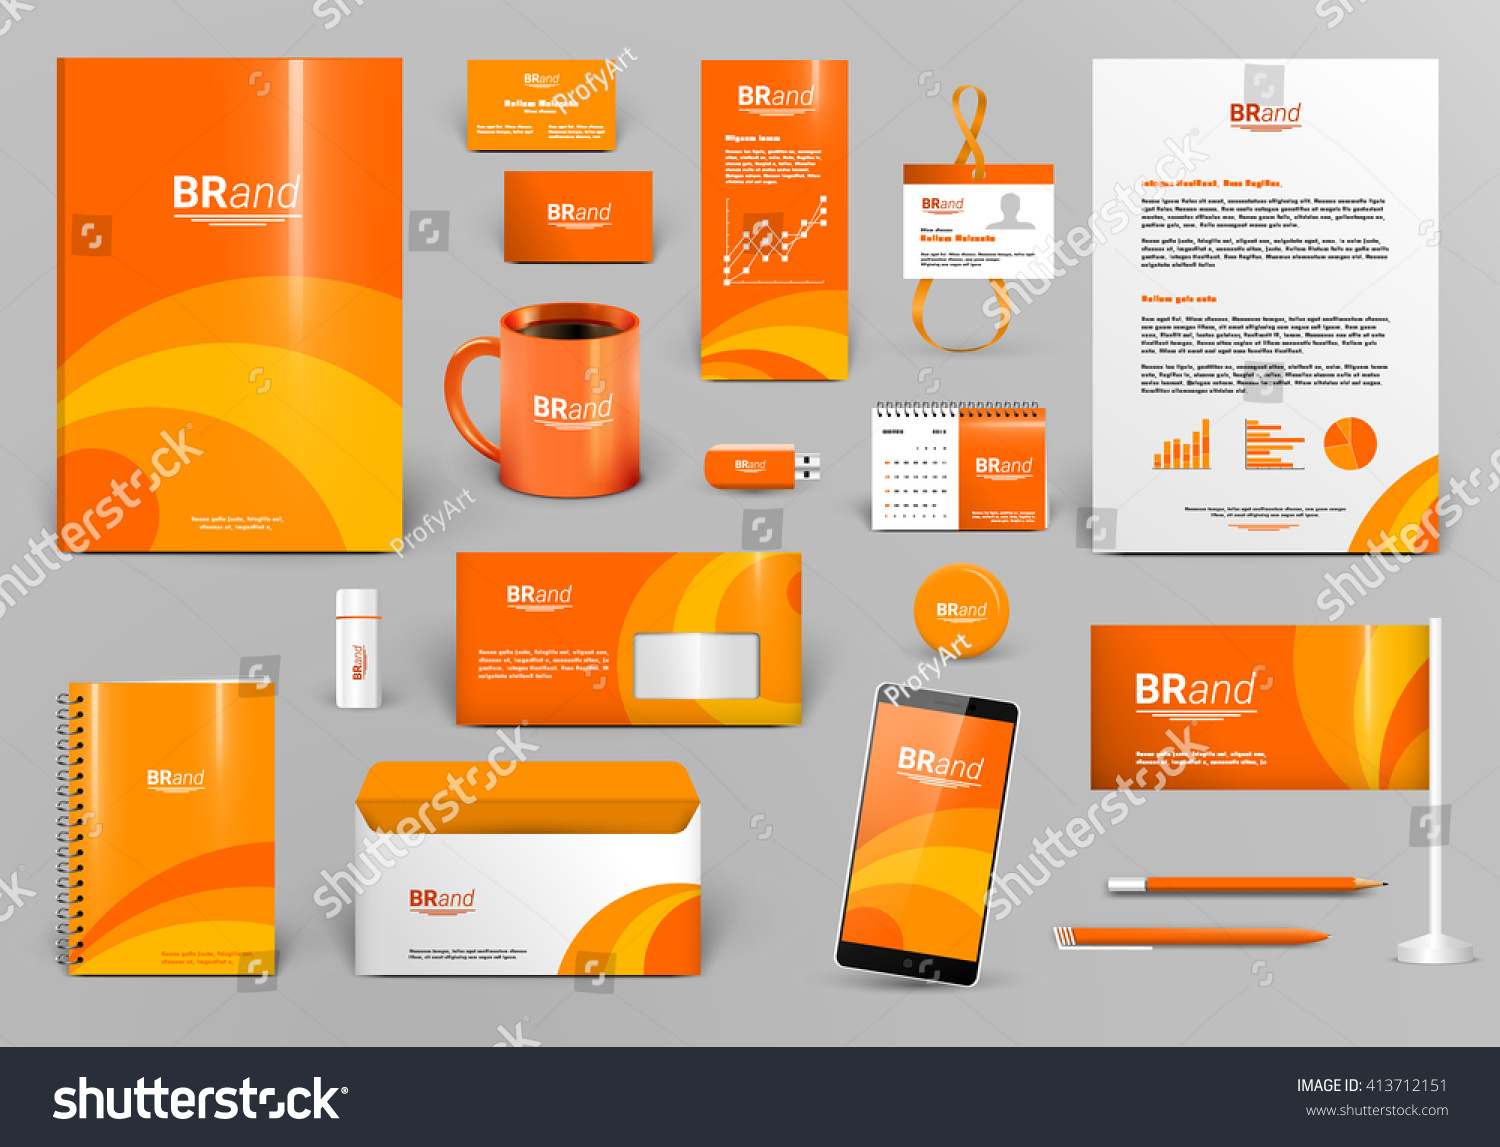 orange luxury branding design kit identity 413712151 shutterstock. Black Bedroom Furniture Sets. Home Design Ideas